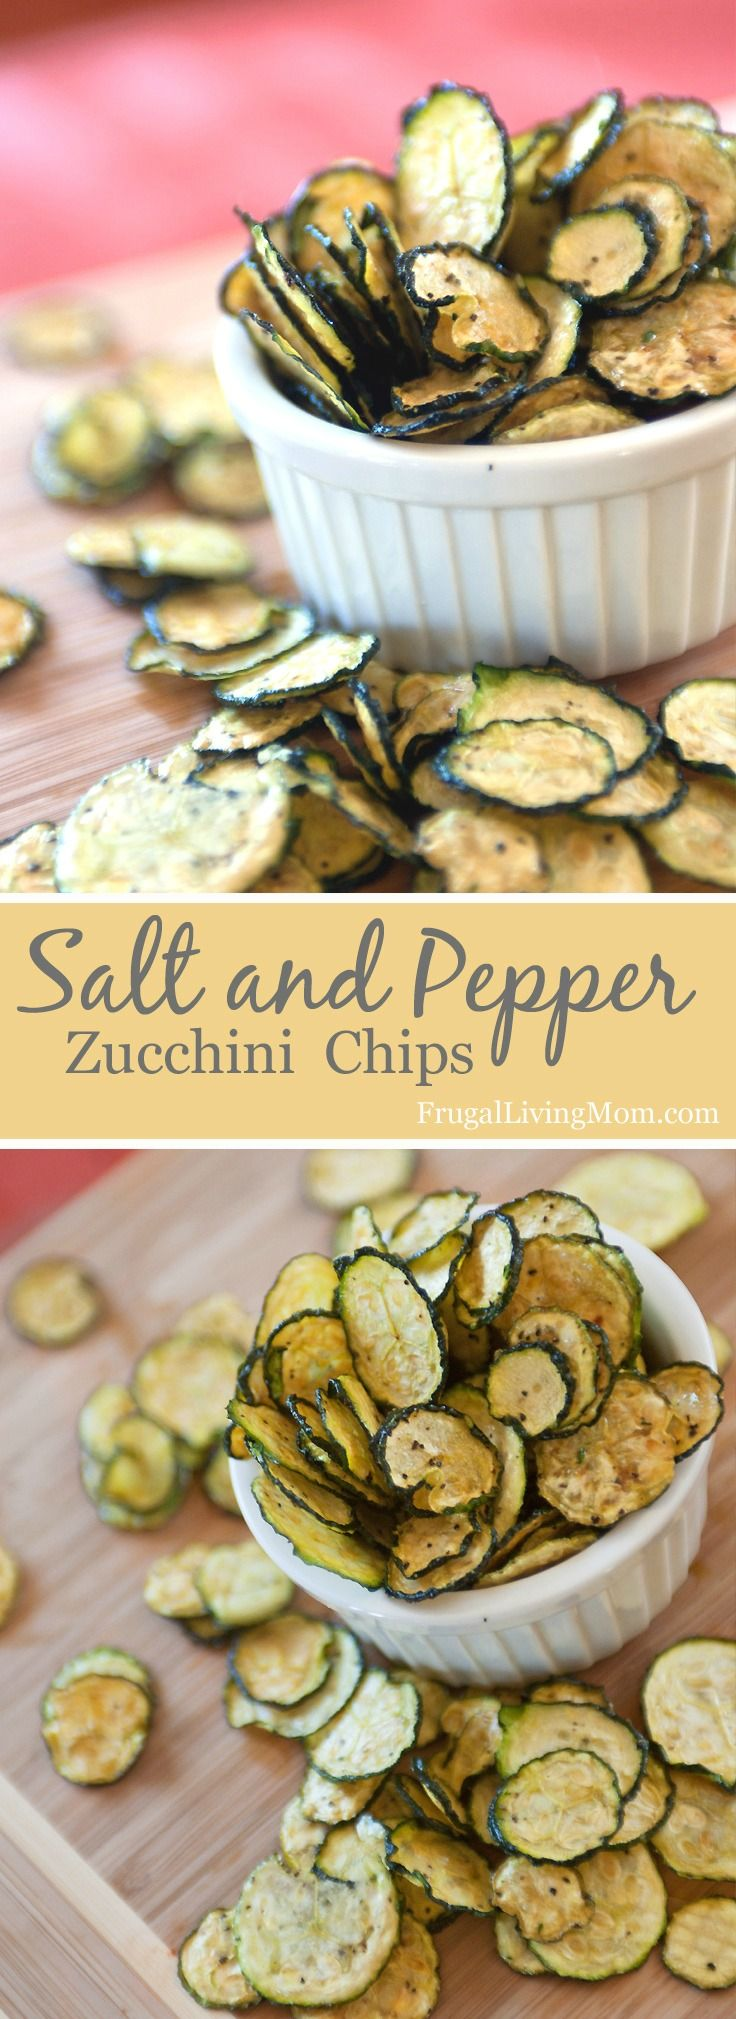 Salt and Pepper Zucchini Chips! Oh MY Goodness. These zucchini chips are SO good. Full of flavor, and just a little spicy because of the pepper. Amazingly easy to make, too! Would be perfect with a homemade garlic dip. You can make these with a dehydrator or in the oven